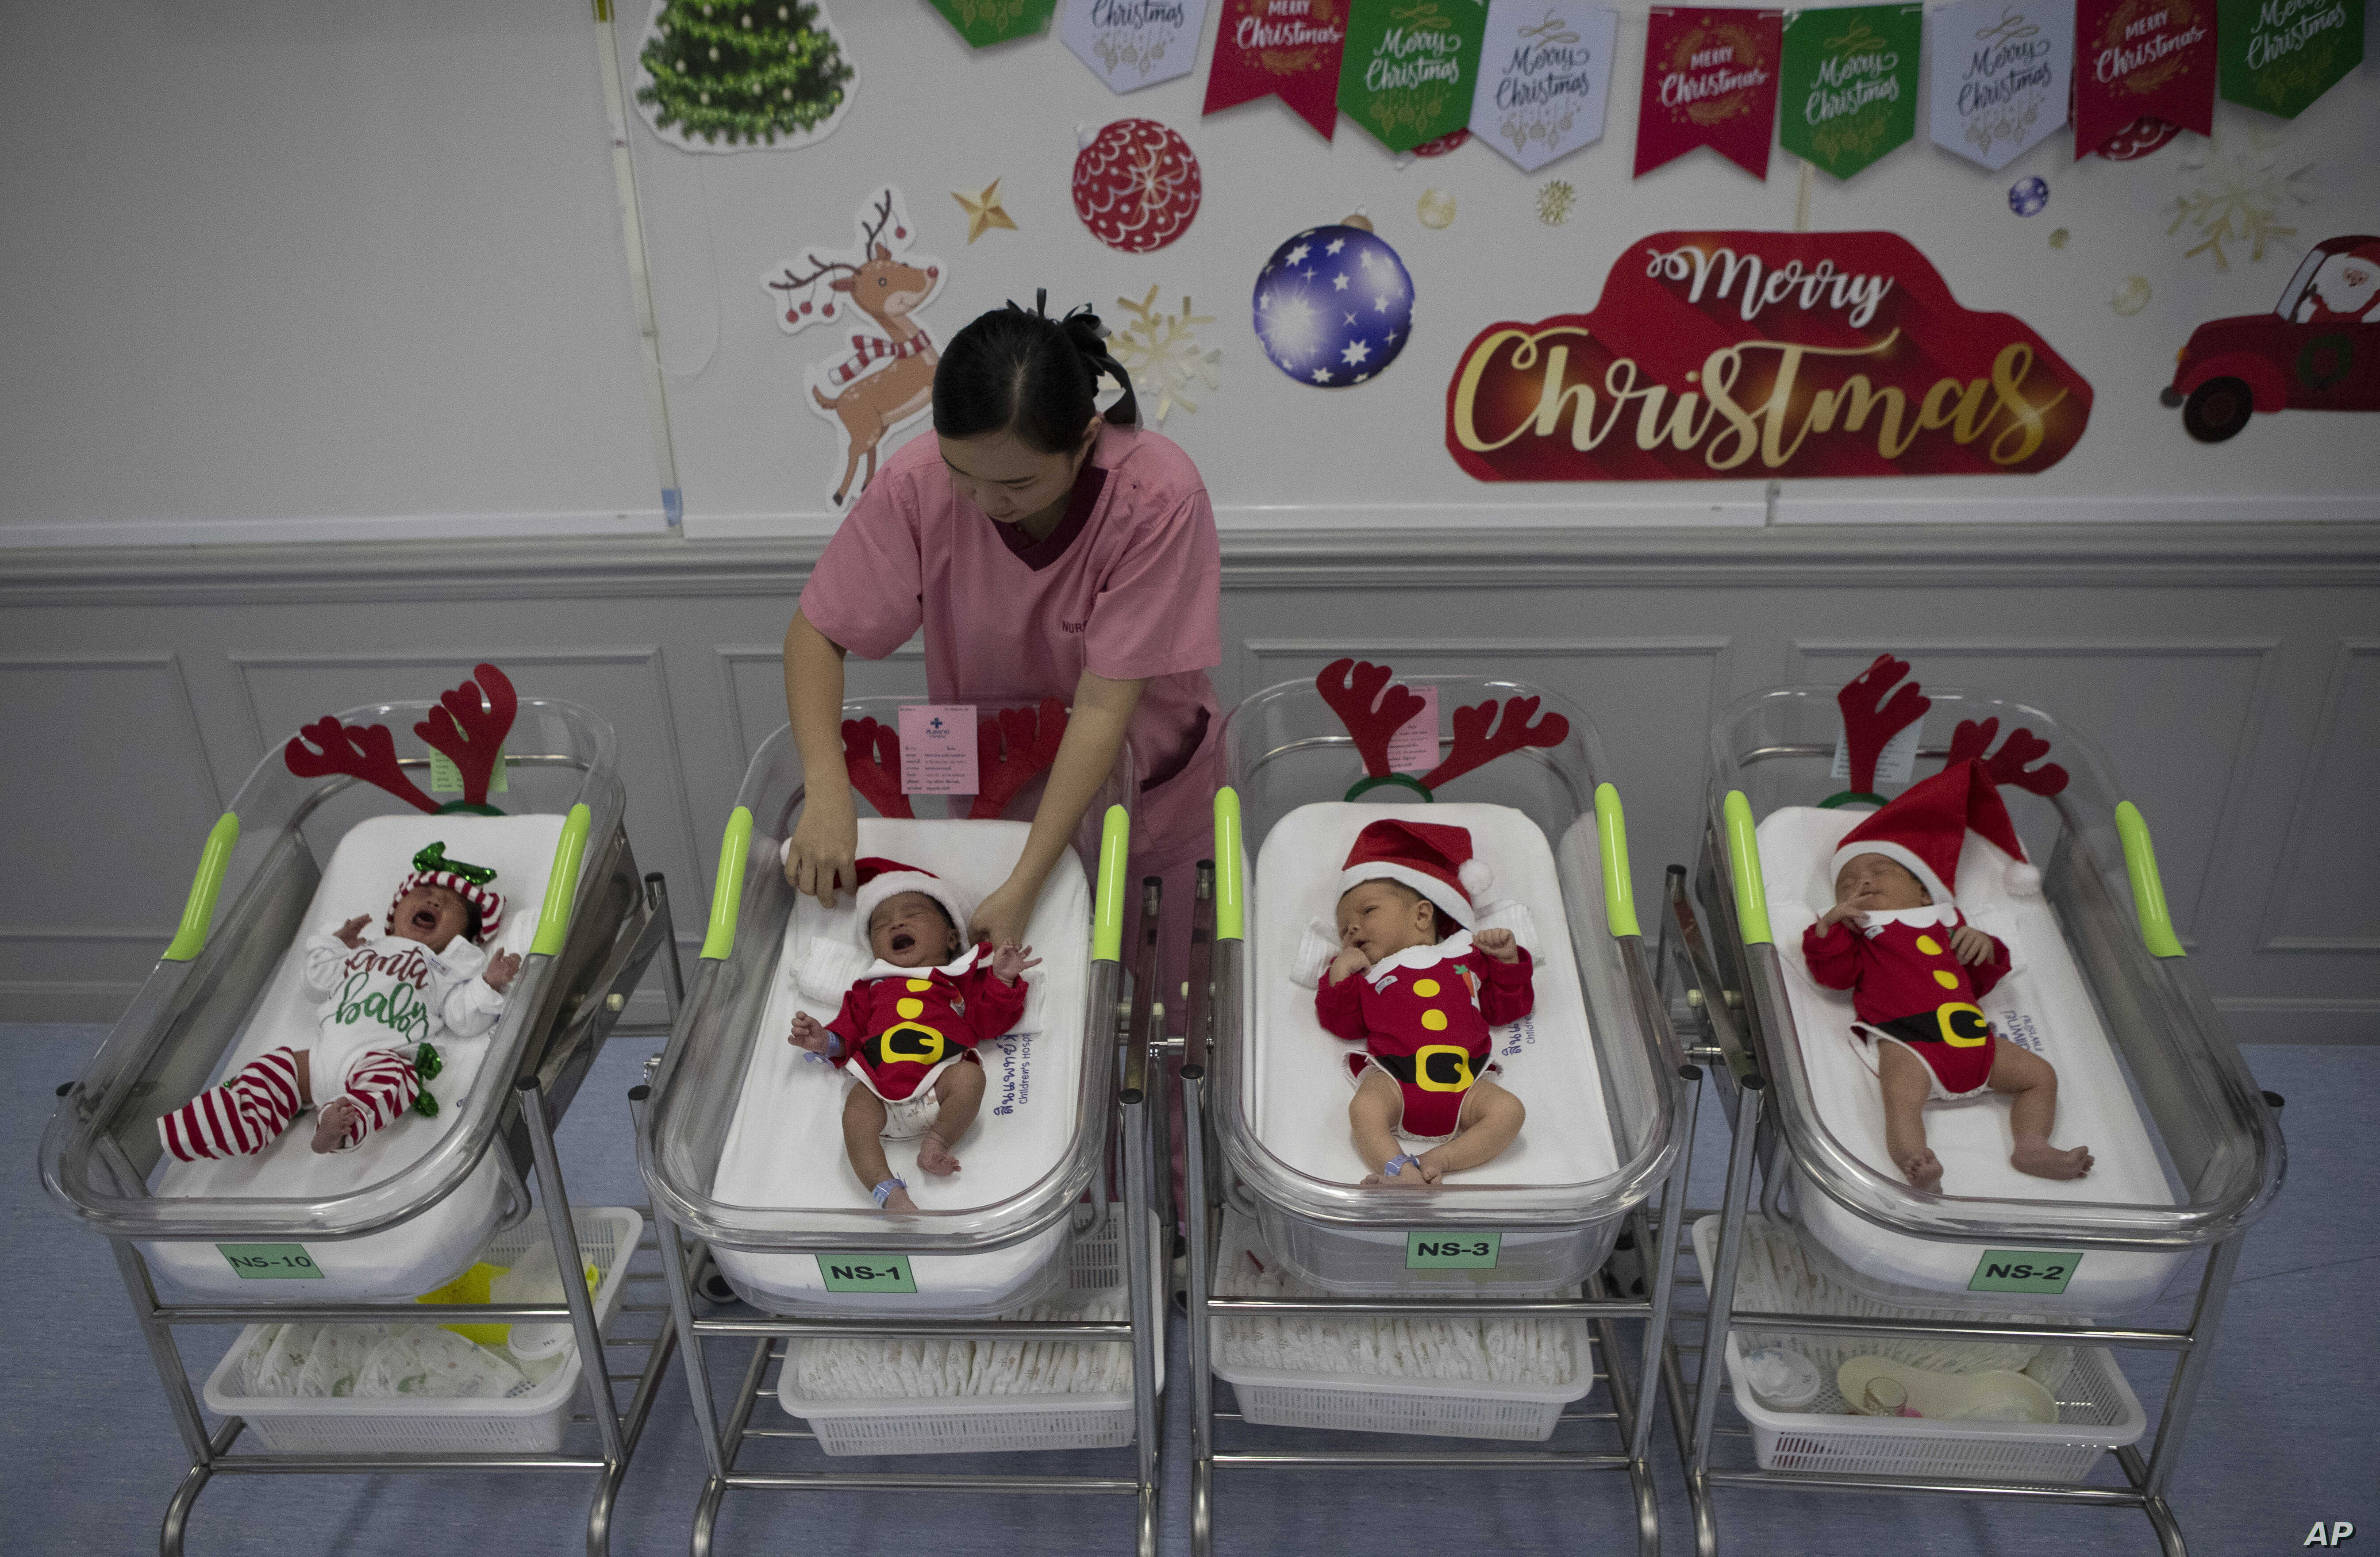 A nurse adjusts the outfits of newborn babies dressed in Santa costumes on Christmas eve at the Synphaet hospital in Bangkok, Thailand, Dec. 24, 2019.